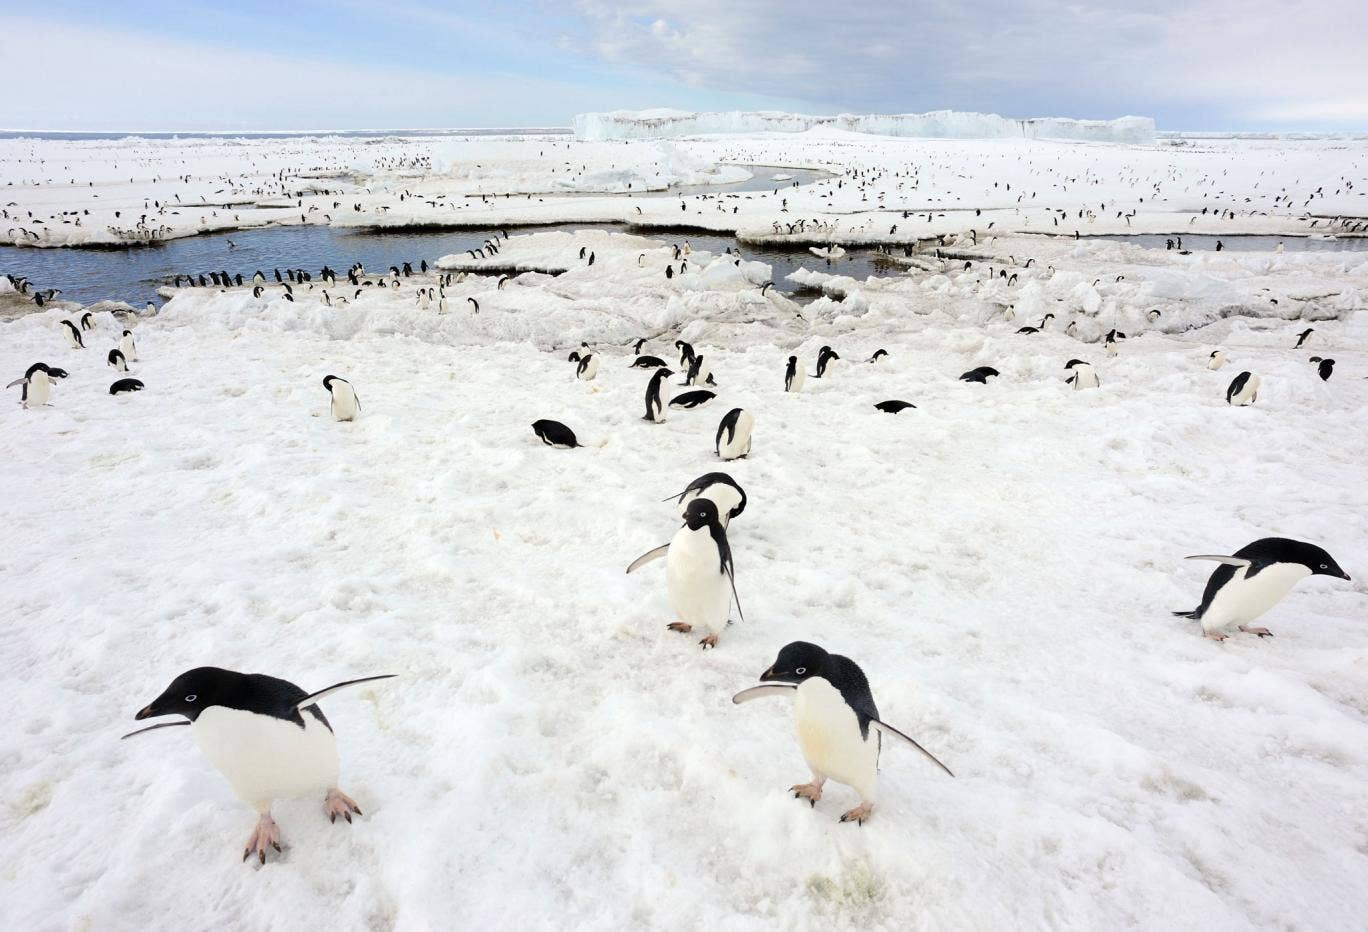 A colony of Adelie penguins in Antarctica, who experts say are finding it harder to find food as sea ice melts. In a separate study, scientists say Magellanic penguins in Argentina are being killed by global warming